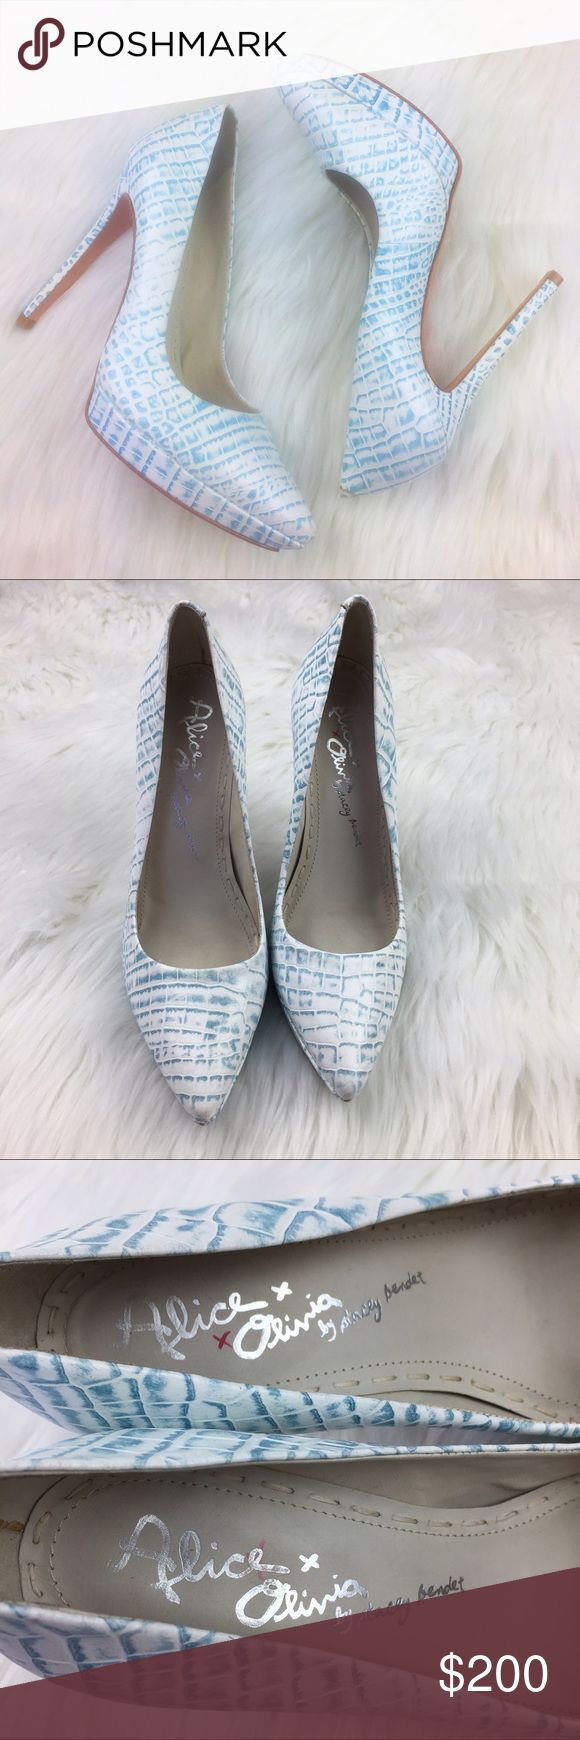 """Alice + Olivia Dina Snakeskin Blue White Pumps •Alice + Olivia Stacey Bendet Blue White Snakeskin Crocodile Alligator Patterned Dina Pumps •Women's Size 38 •In excellent used condition with light signs of wear on bottom and inner sole - worn once •Retail $295 •Heel height is approximately 4.5"""" Alice + Olivia Shoes Heels"""